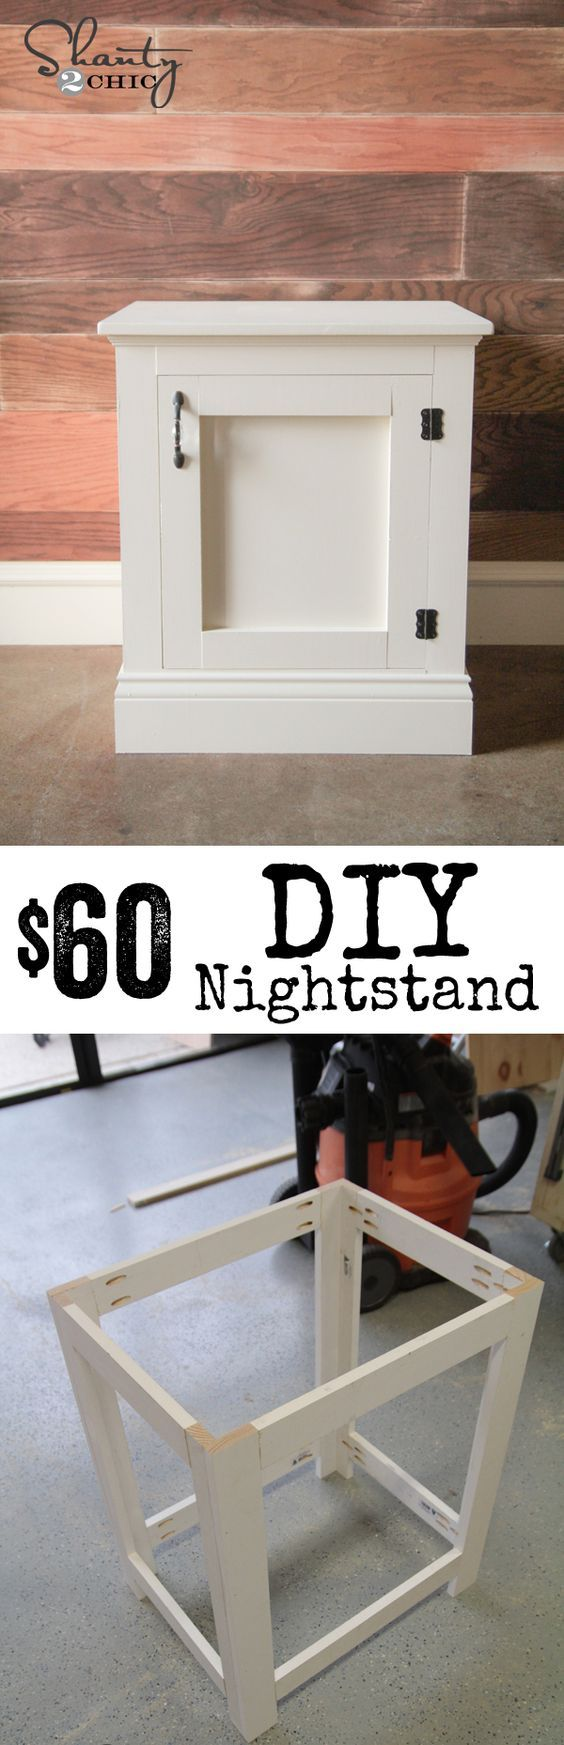 Diy Nightstand With Storage Easy To Follow Tutorial Love